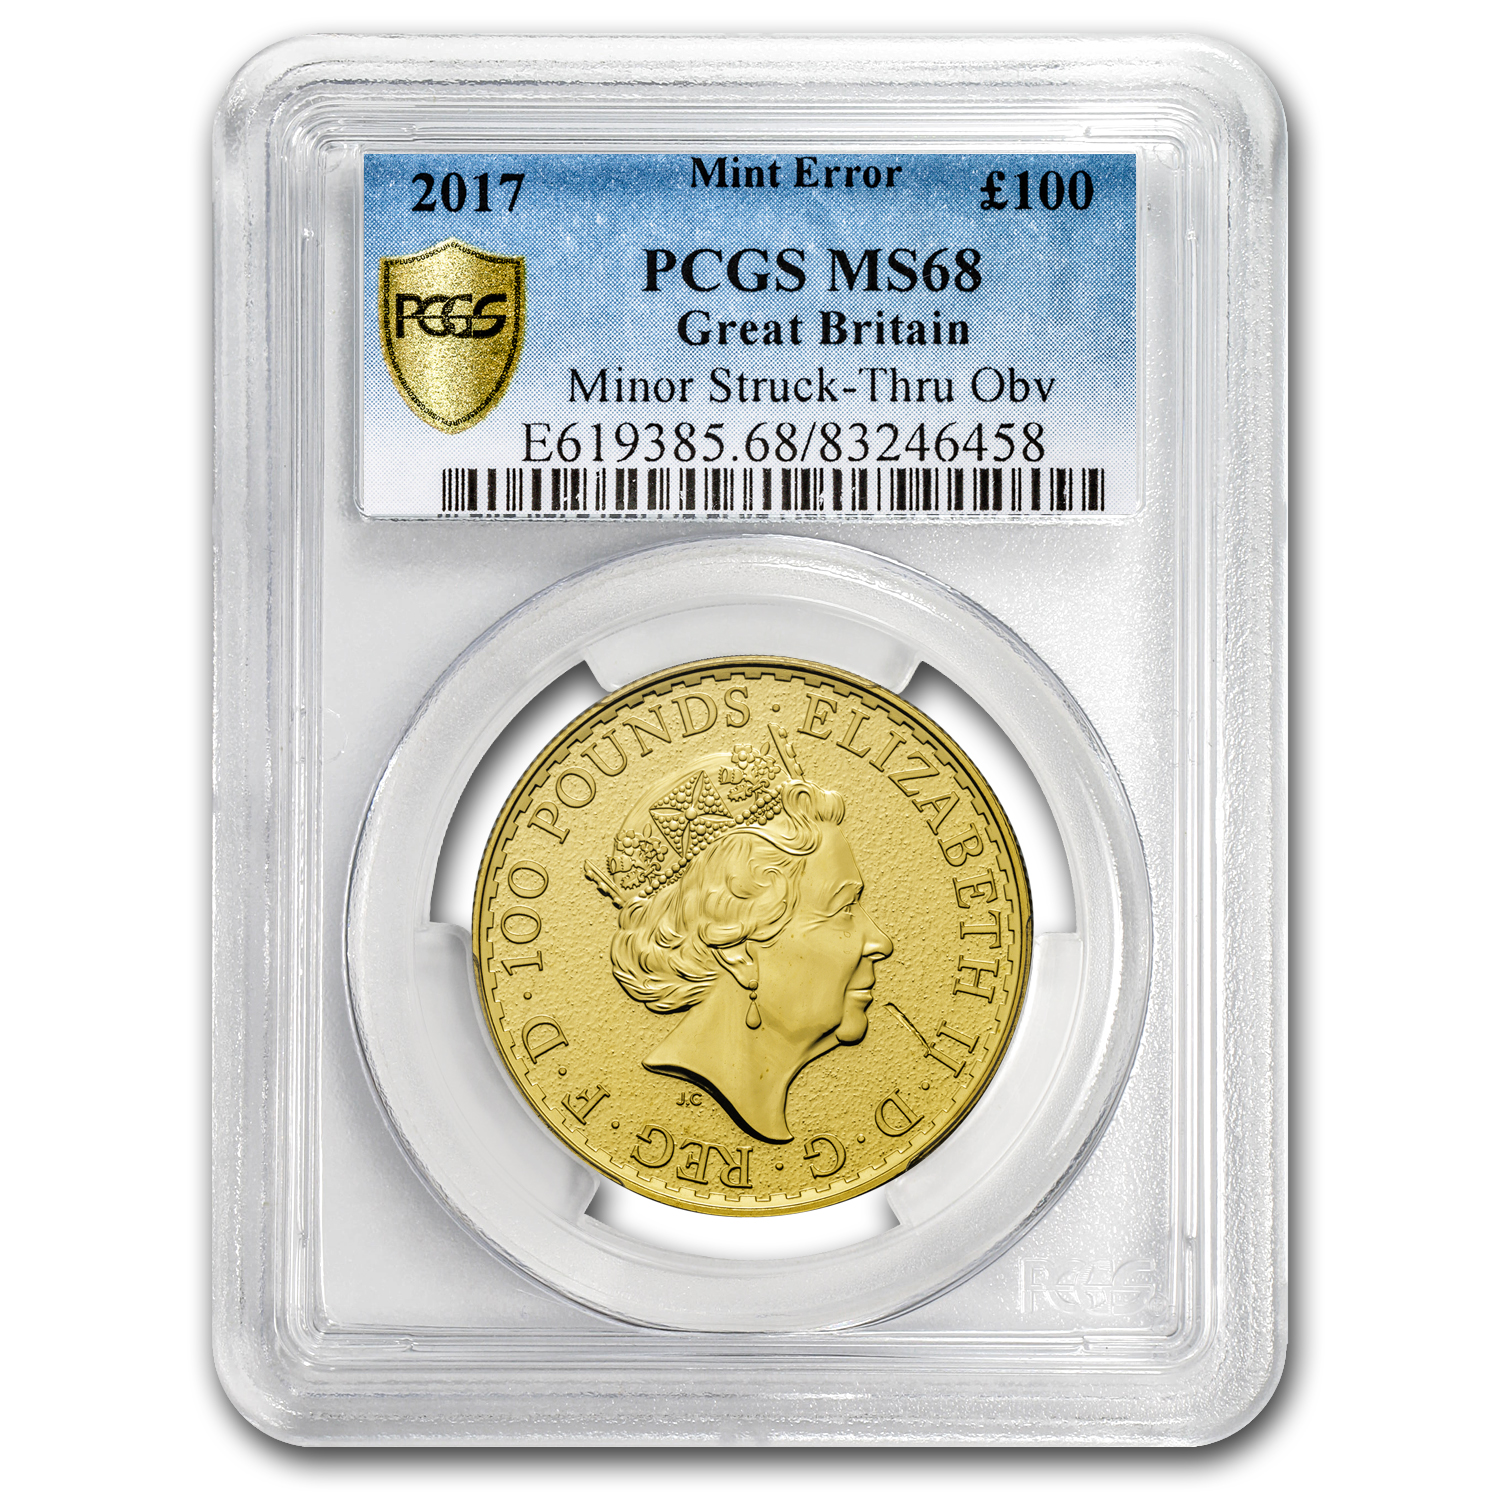 2017 Great Britain 1 oz Gold Britannia MS-68 PCGS (Mint Error)